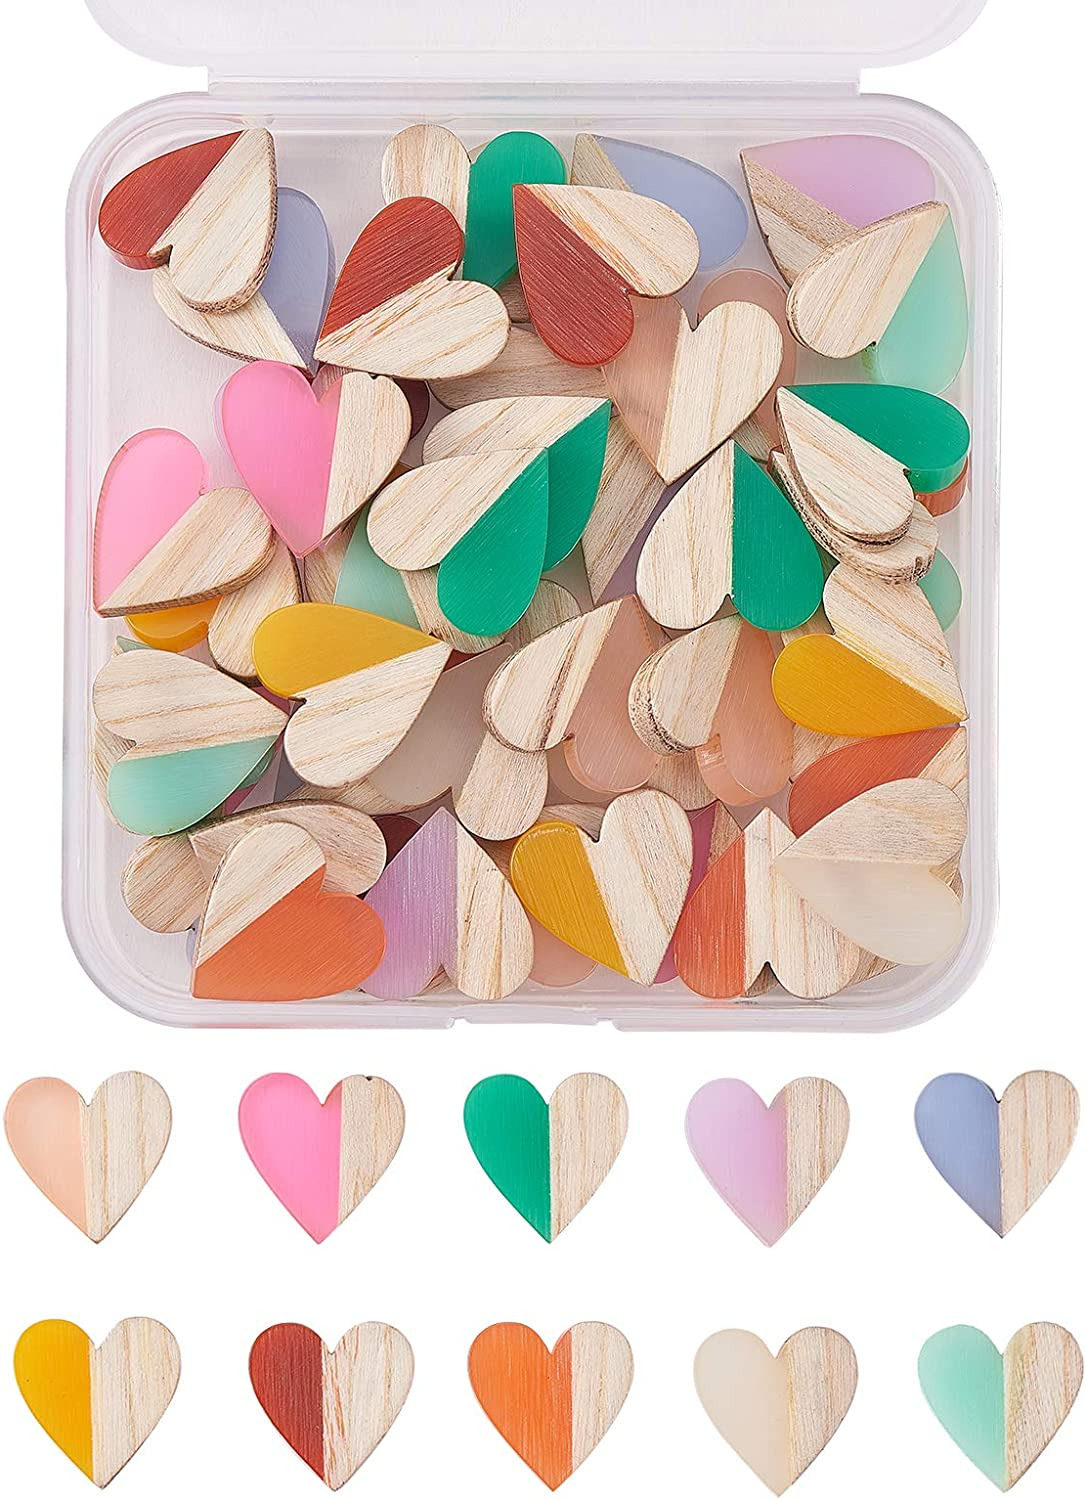 Airssory 50 Pcs 10-Colors specialty Low price shop Heart Shaped Two Resin Wood Fla Tone